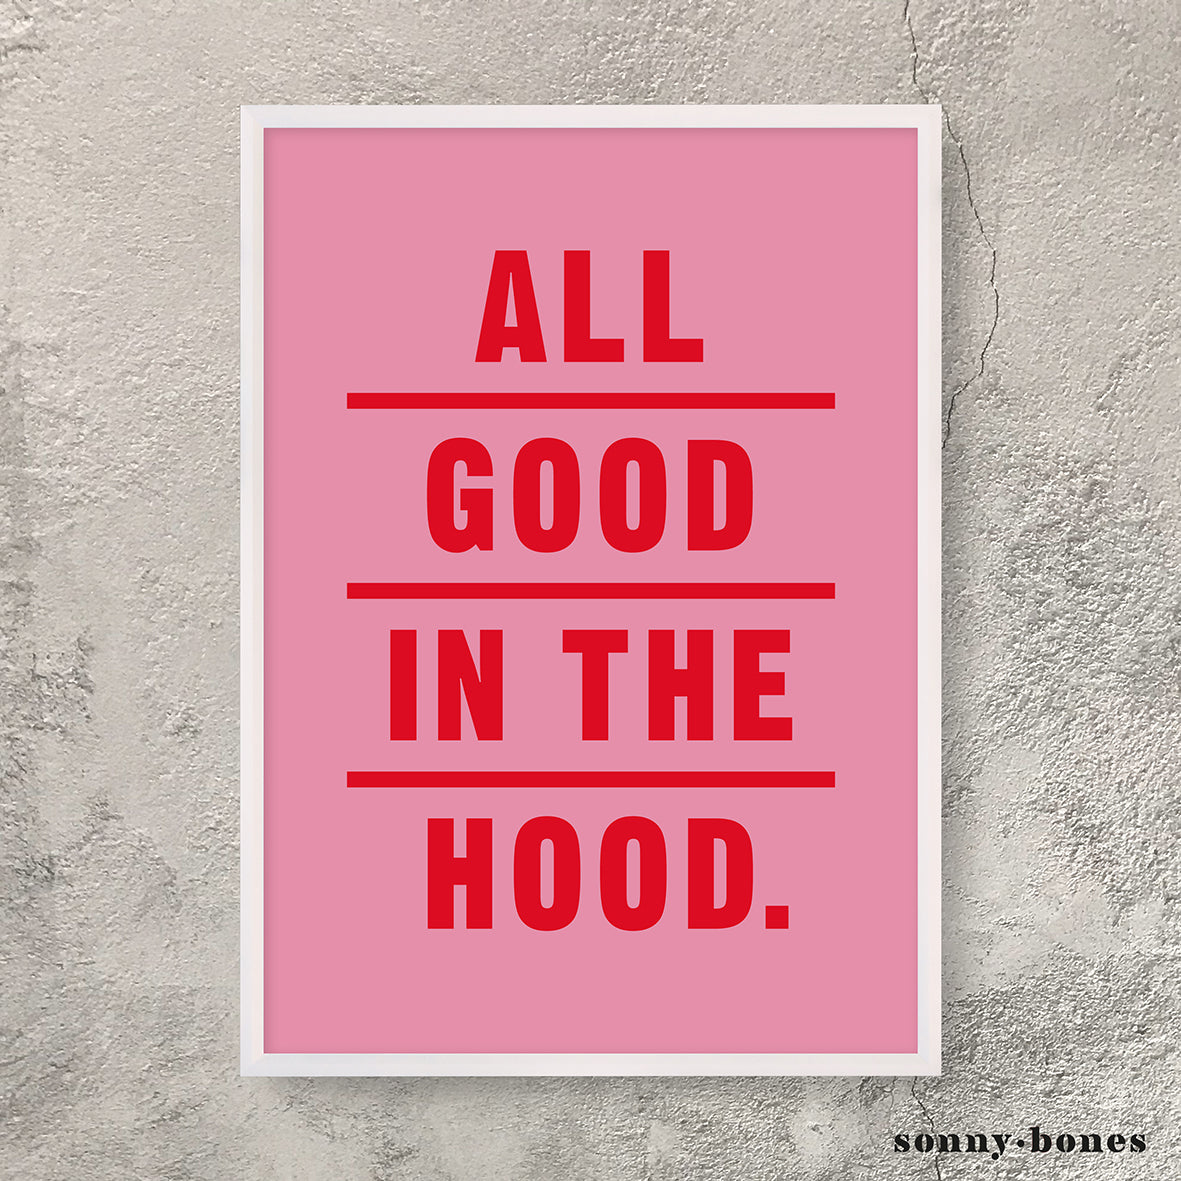 GOOD IN THE HOOD (pink/red)